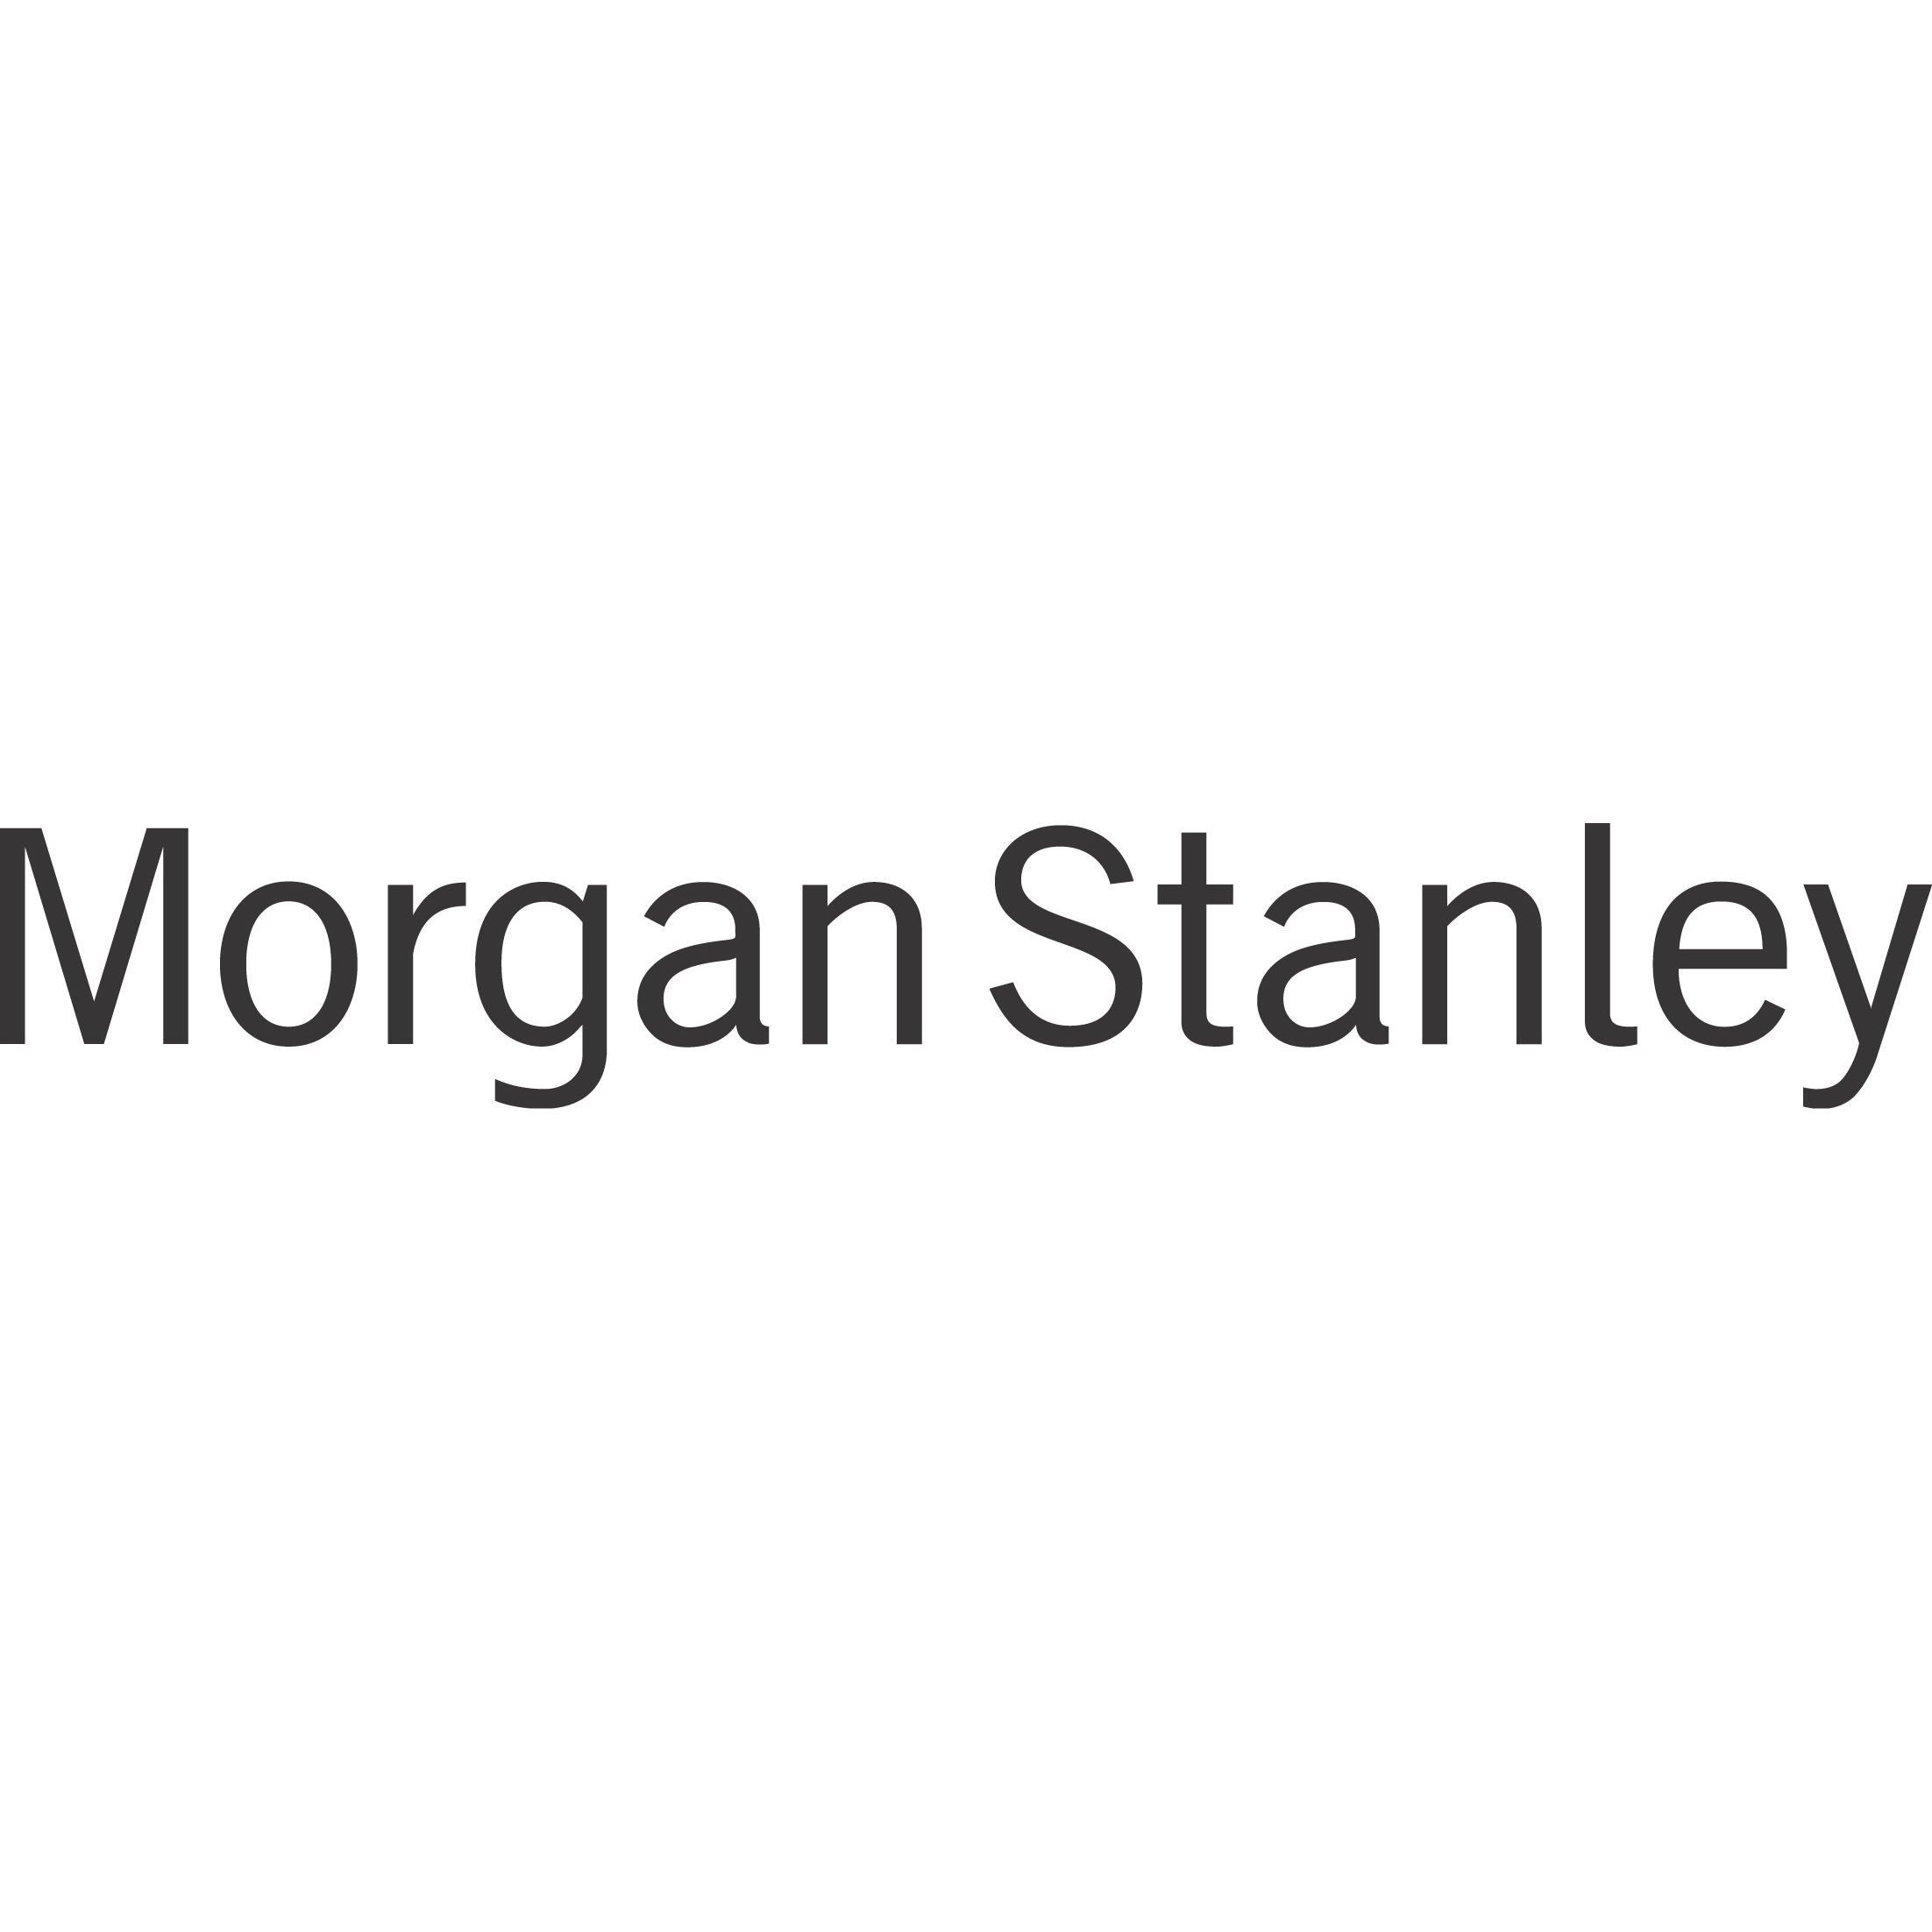 Vyvonne L Phoutharansy - Morgan Stanley | Financial Advisor in Franklin,Tennessee